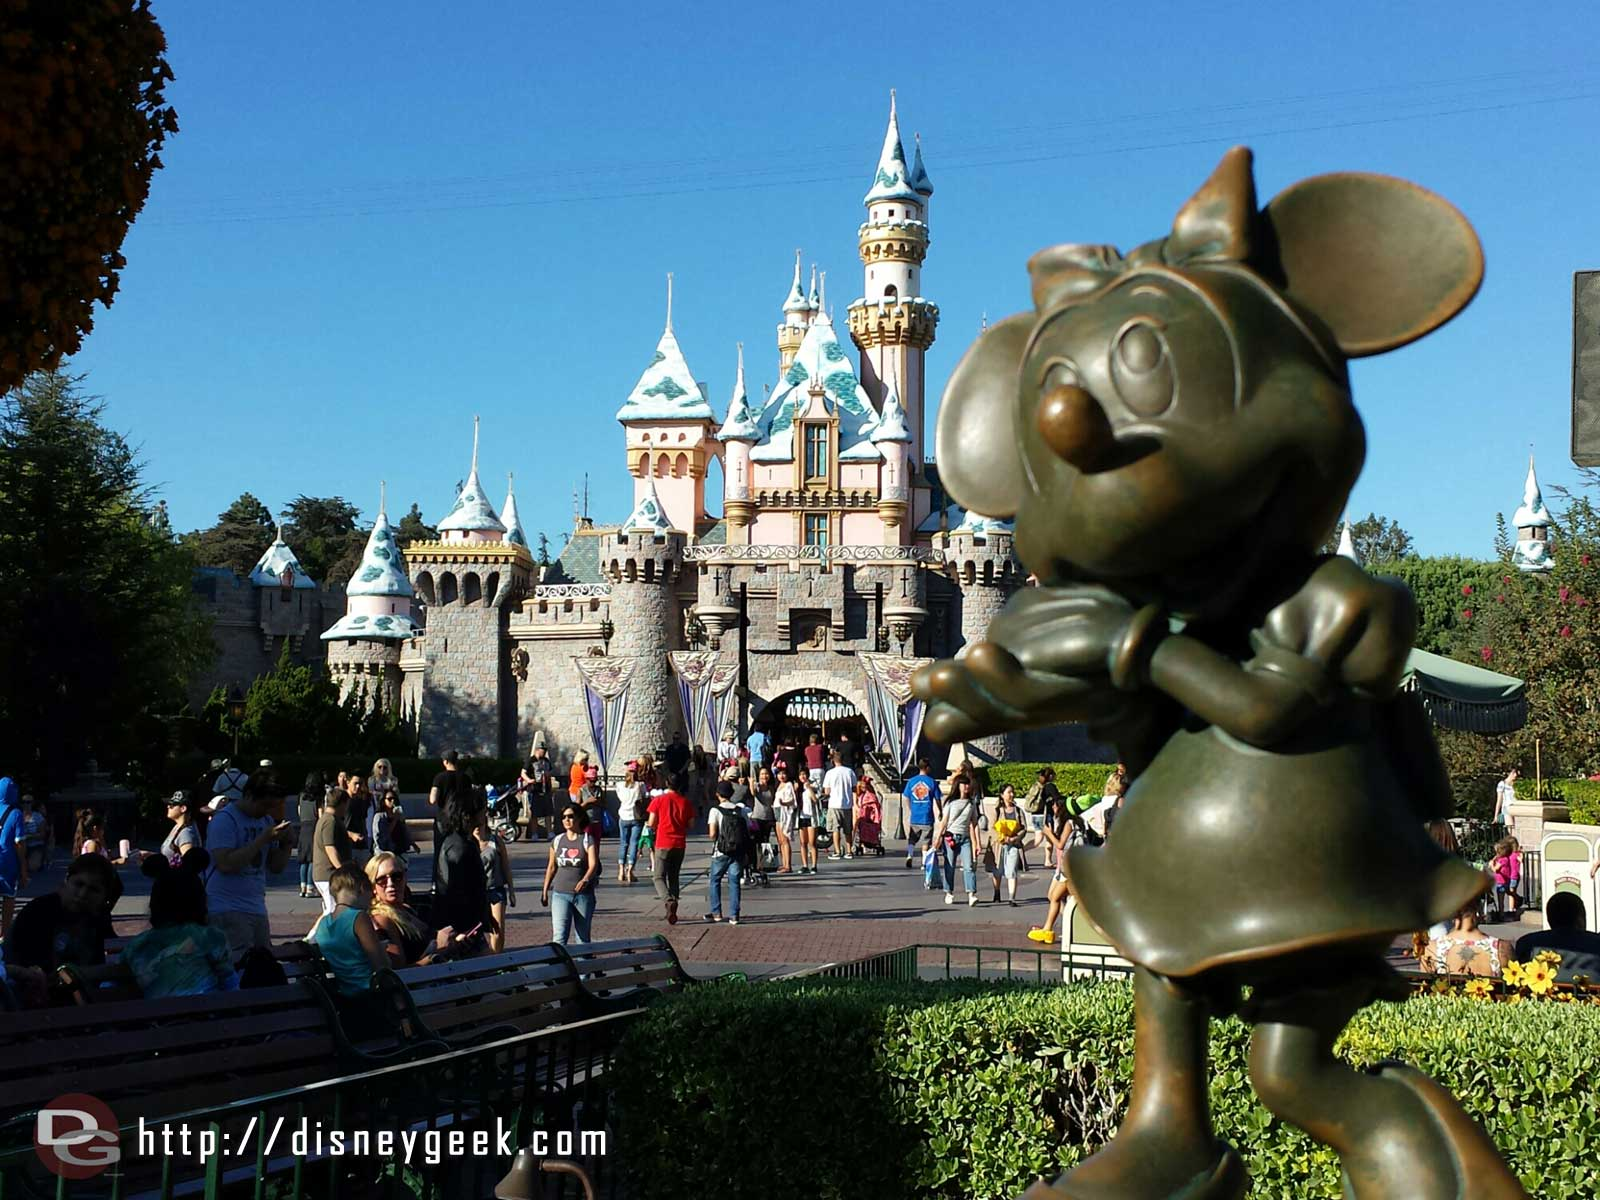 Minnie and Sleeping Beauty Castle #Disneyland